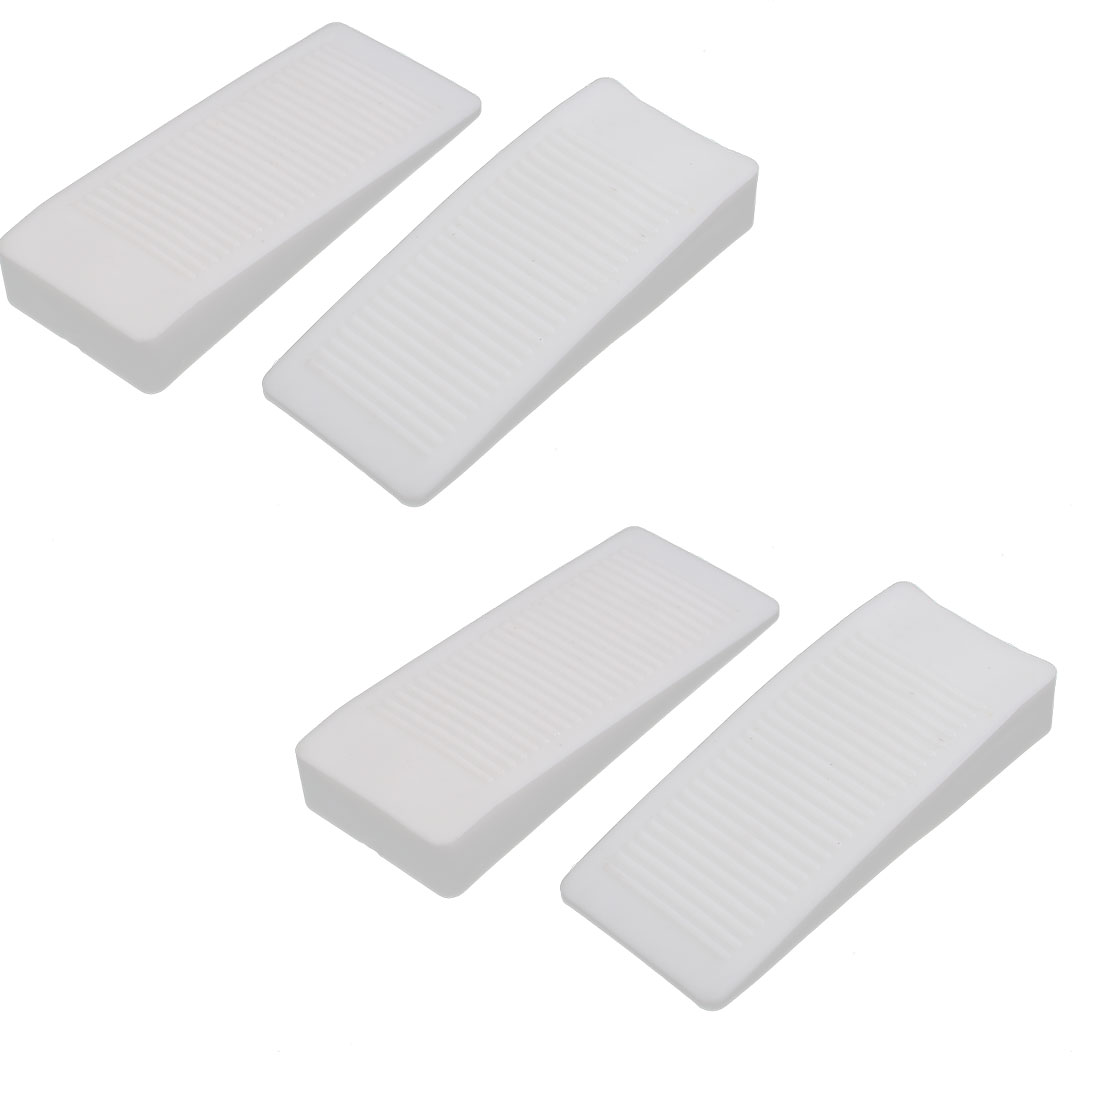 Home Office Safety Rubber Door Stop Stopper Doorstop Wedge Block White 4pcs